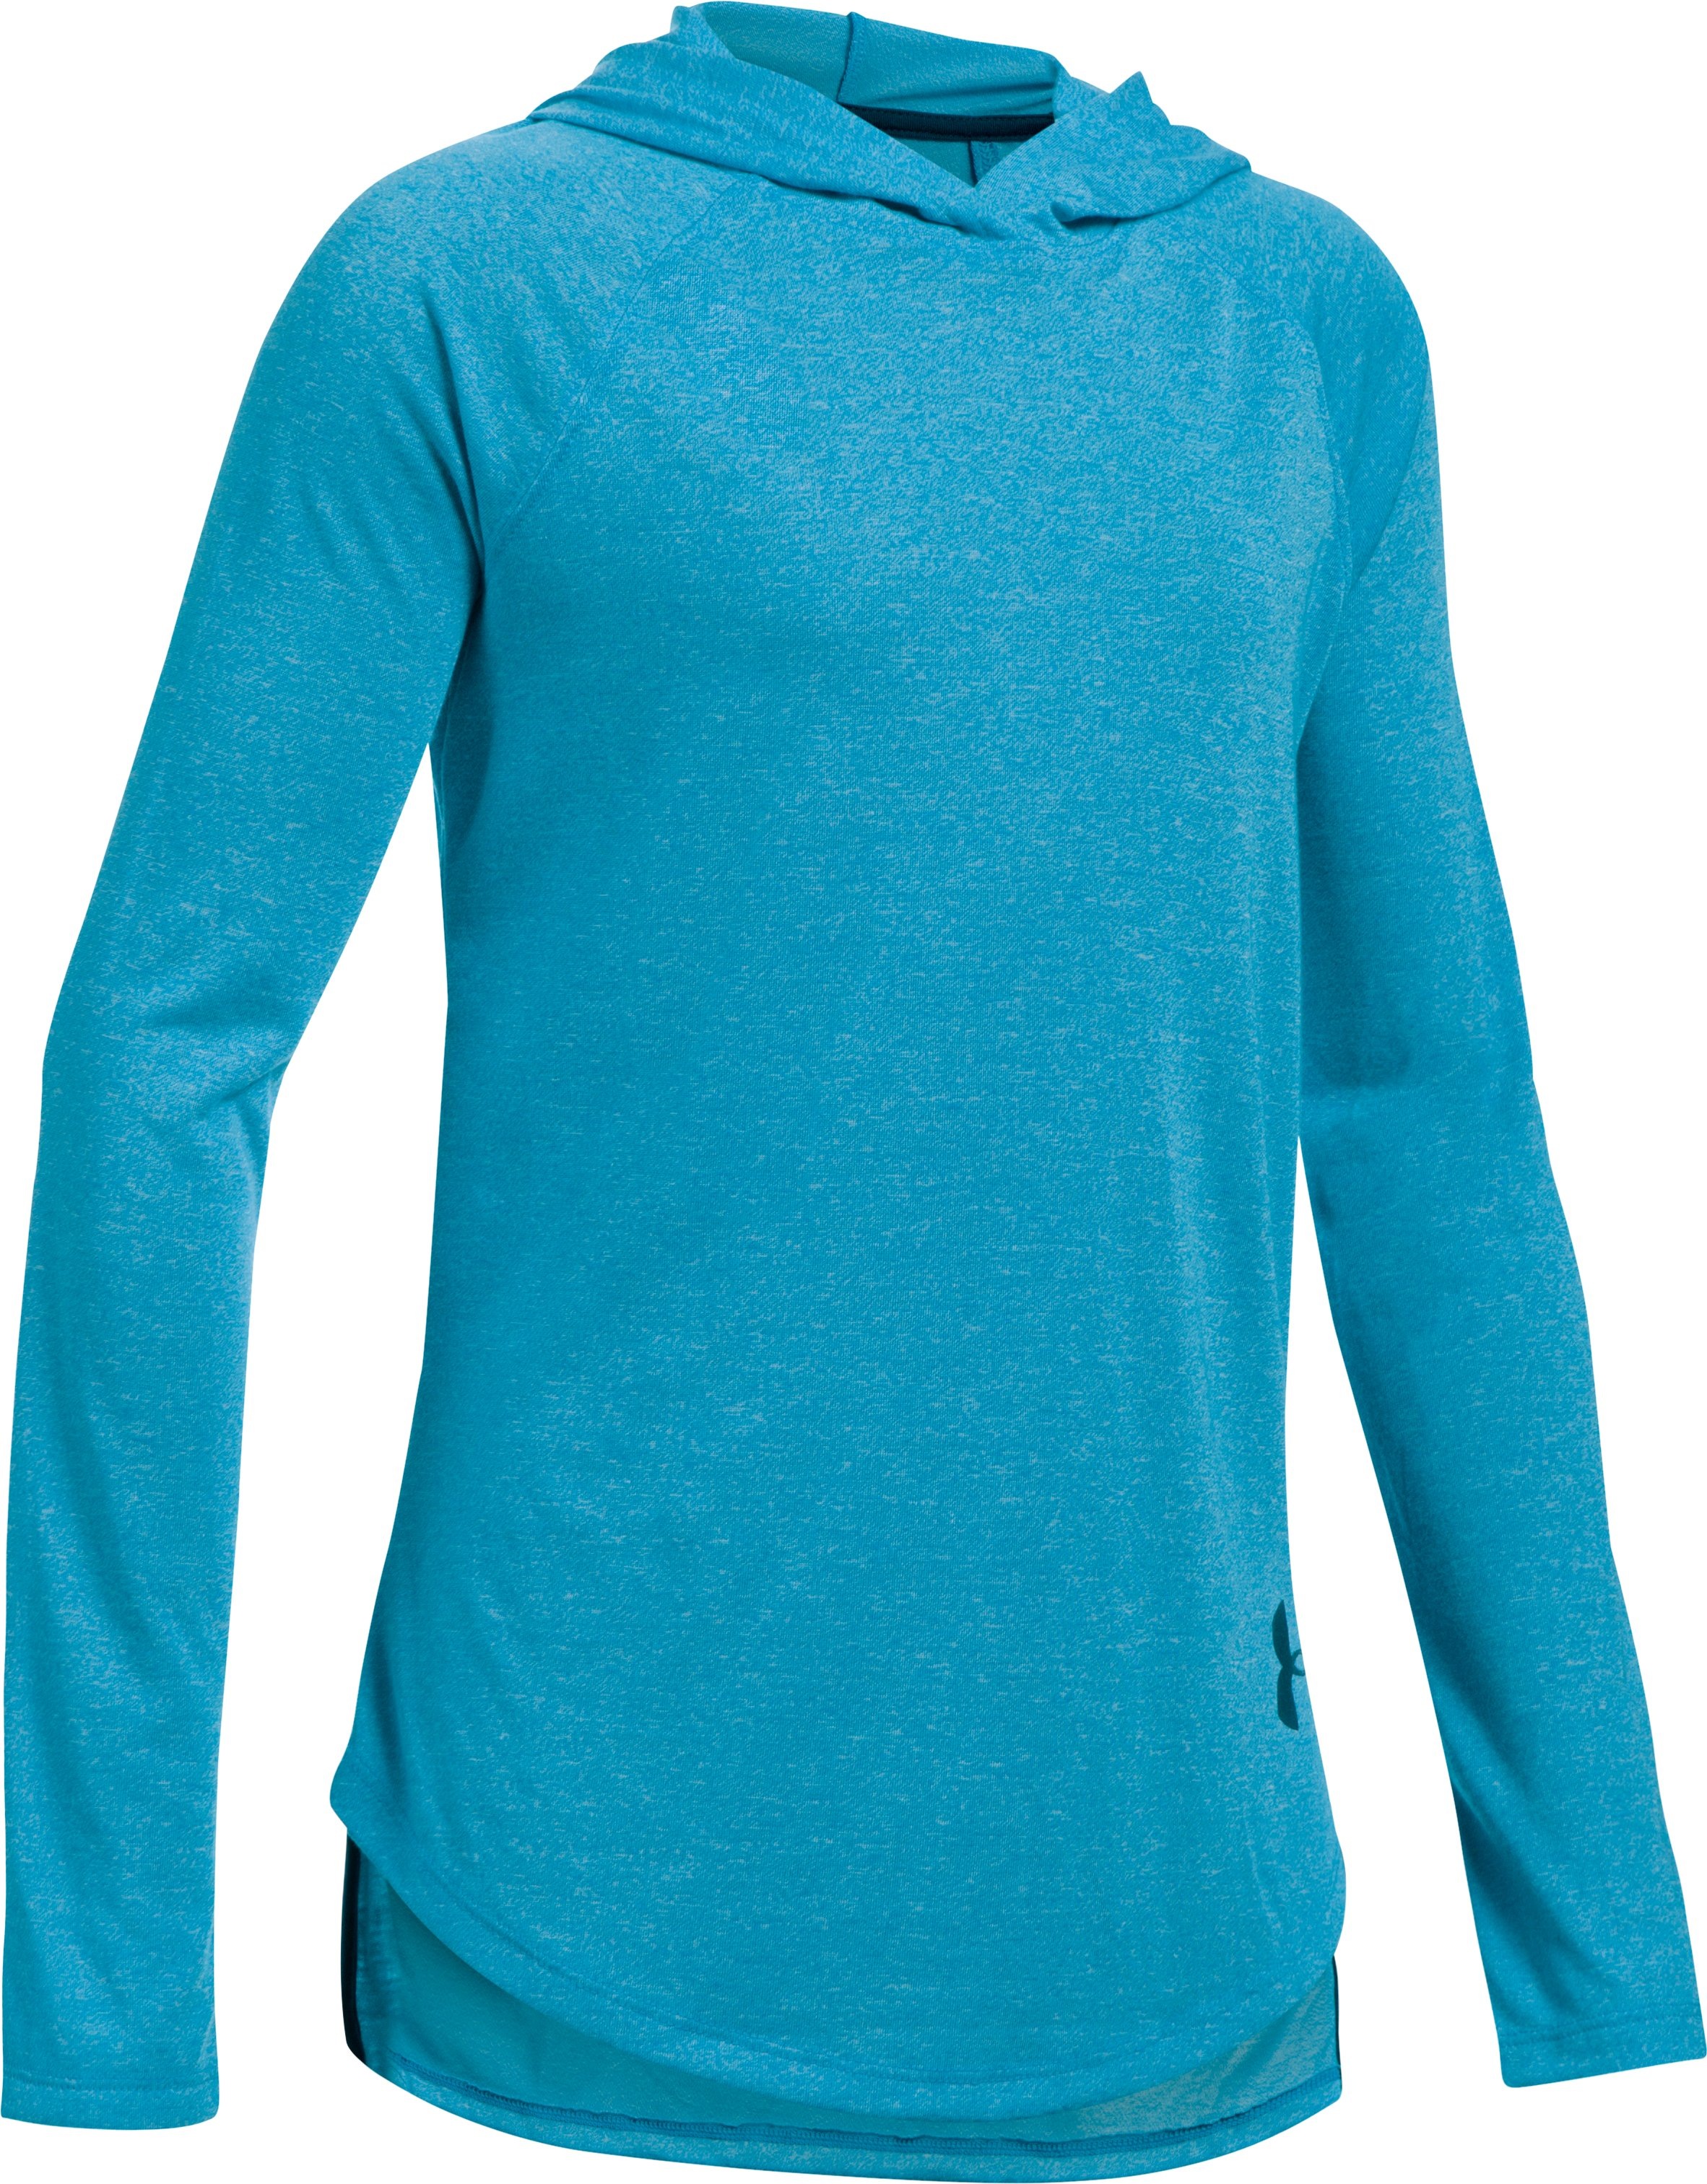 Girls' Threadborne™ Long Sleeve Hoodie, BLUE SHIFT